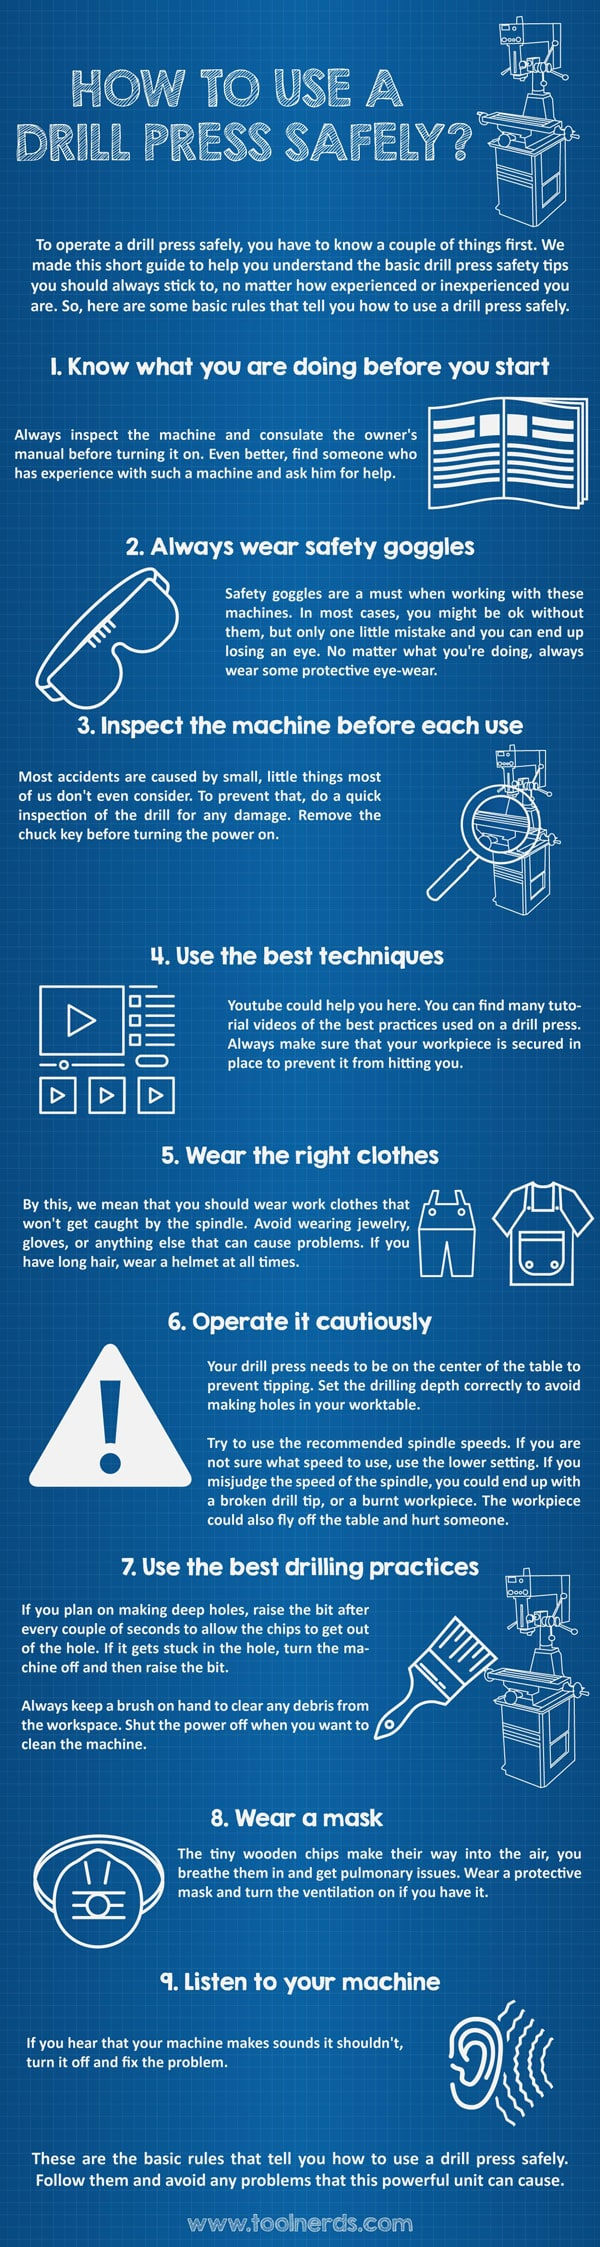 How to Use a Drill Press Safely Infographic